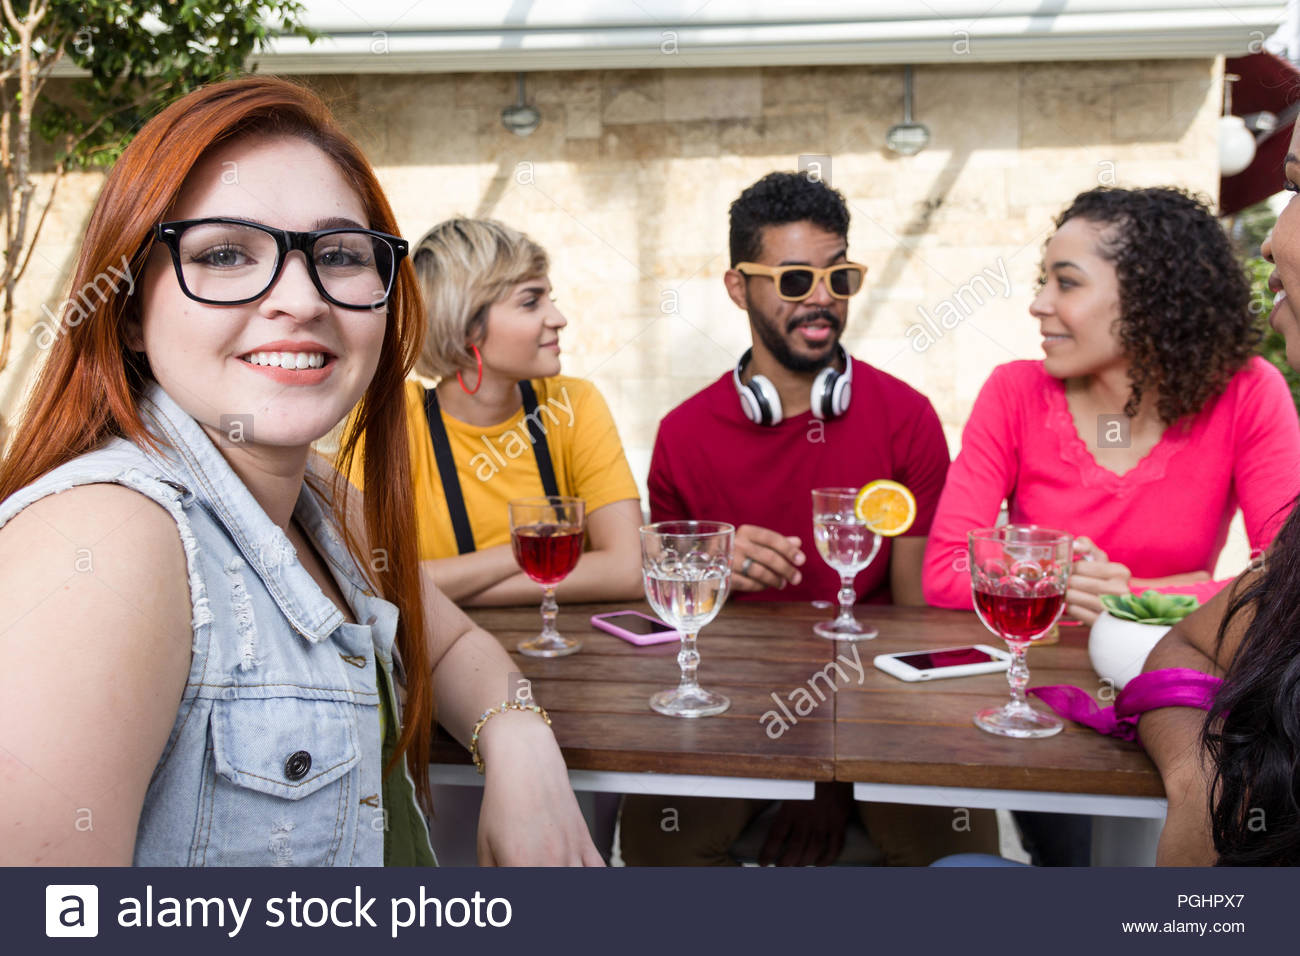 Happy millennials friends cheering and drinking together at cafe bar outdoor. Mixed race group of friends having fun at restaurant outside. Spring, wa - Stock Image